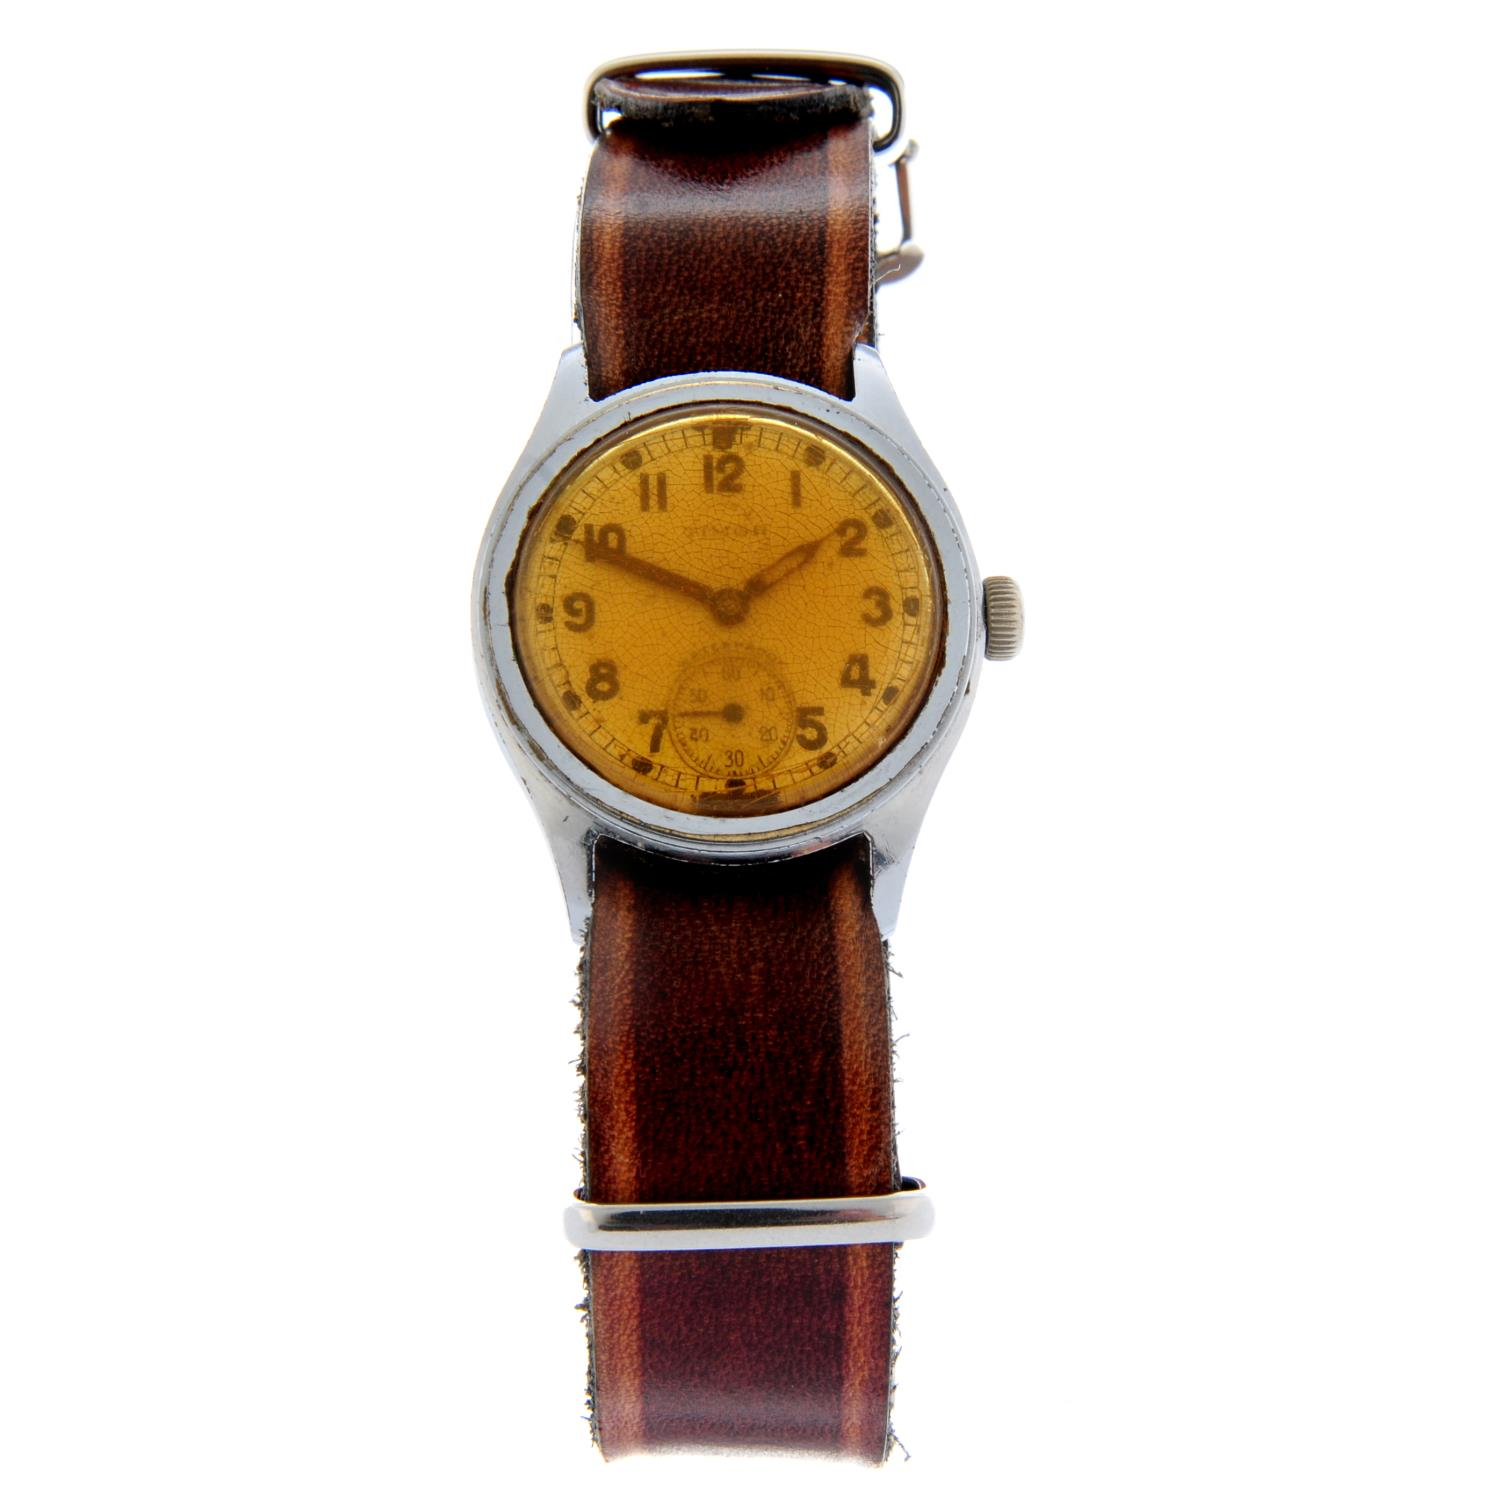 TIMOR - a military issue wrist watch.